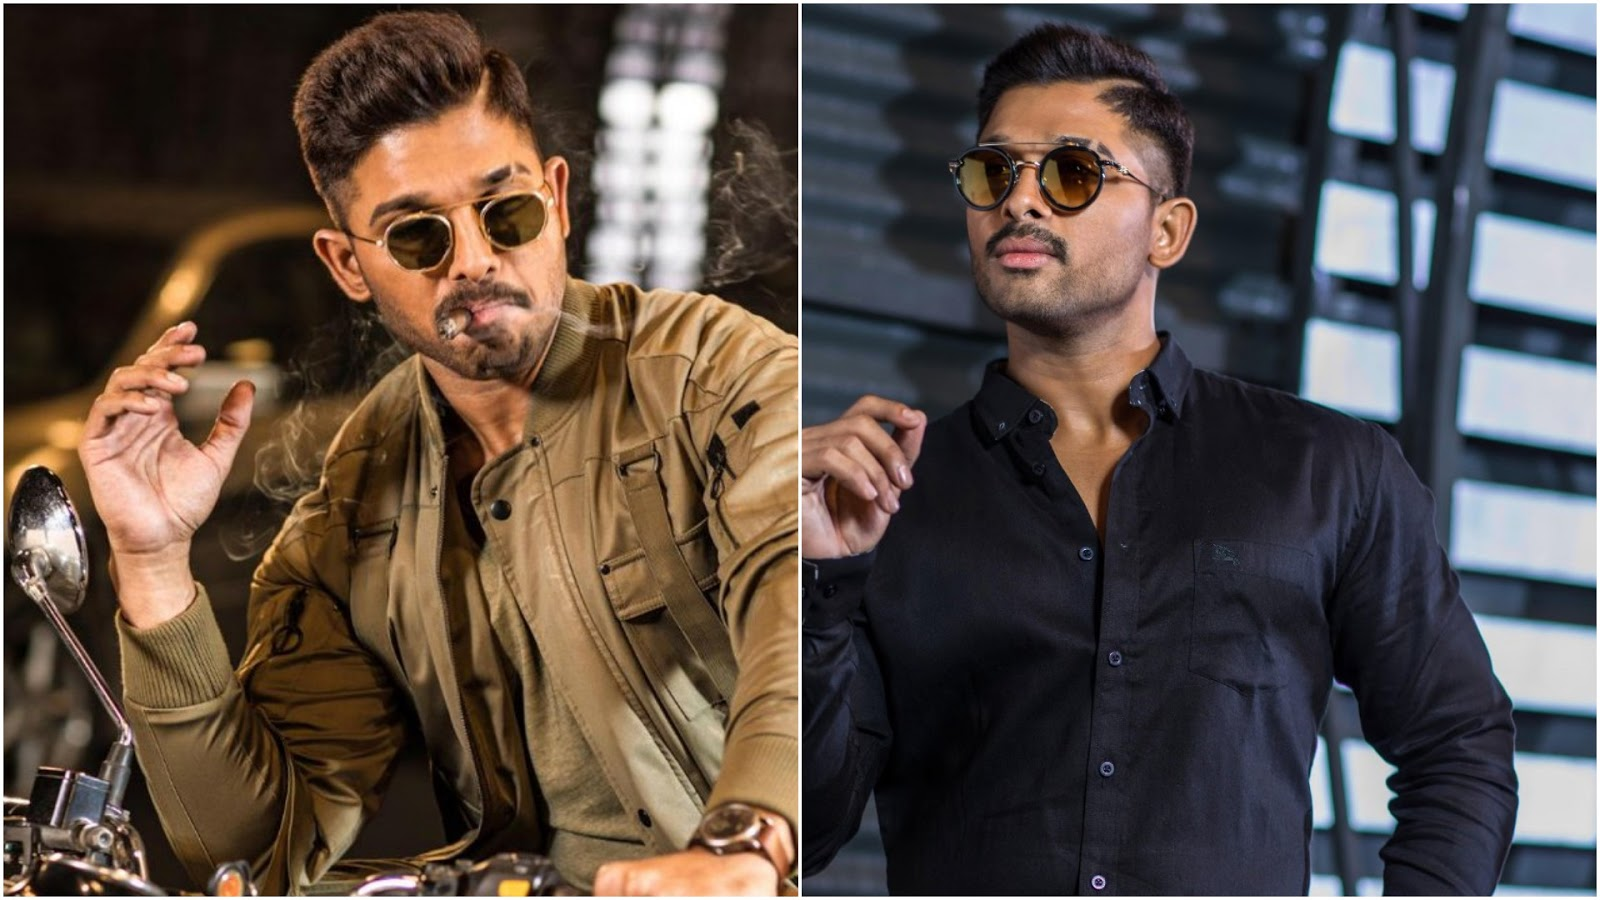 Allu arjun looks fierce and stylish april 8 surprise for fans and the makers of na peru surya have announced a surprise for bunnys fans the films dialogue impact will be delivered on the special day thecheapjerseys Gallery